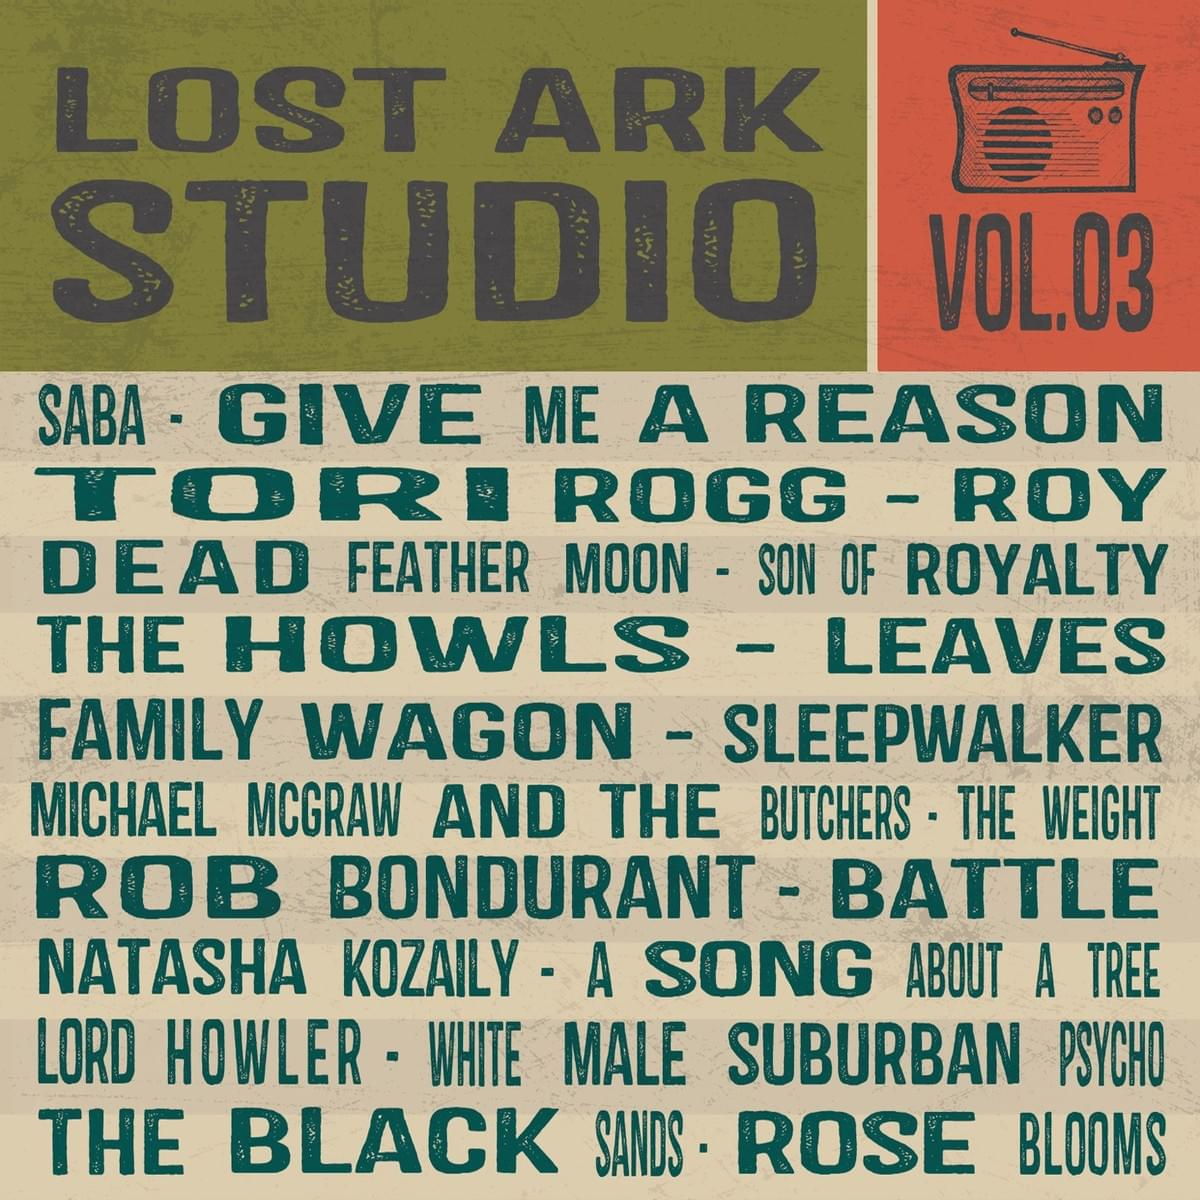 Lost Ark Studio Compilation - Vol. 03